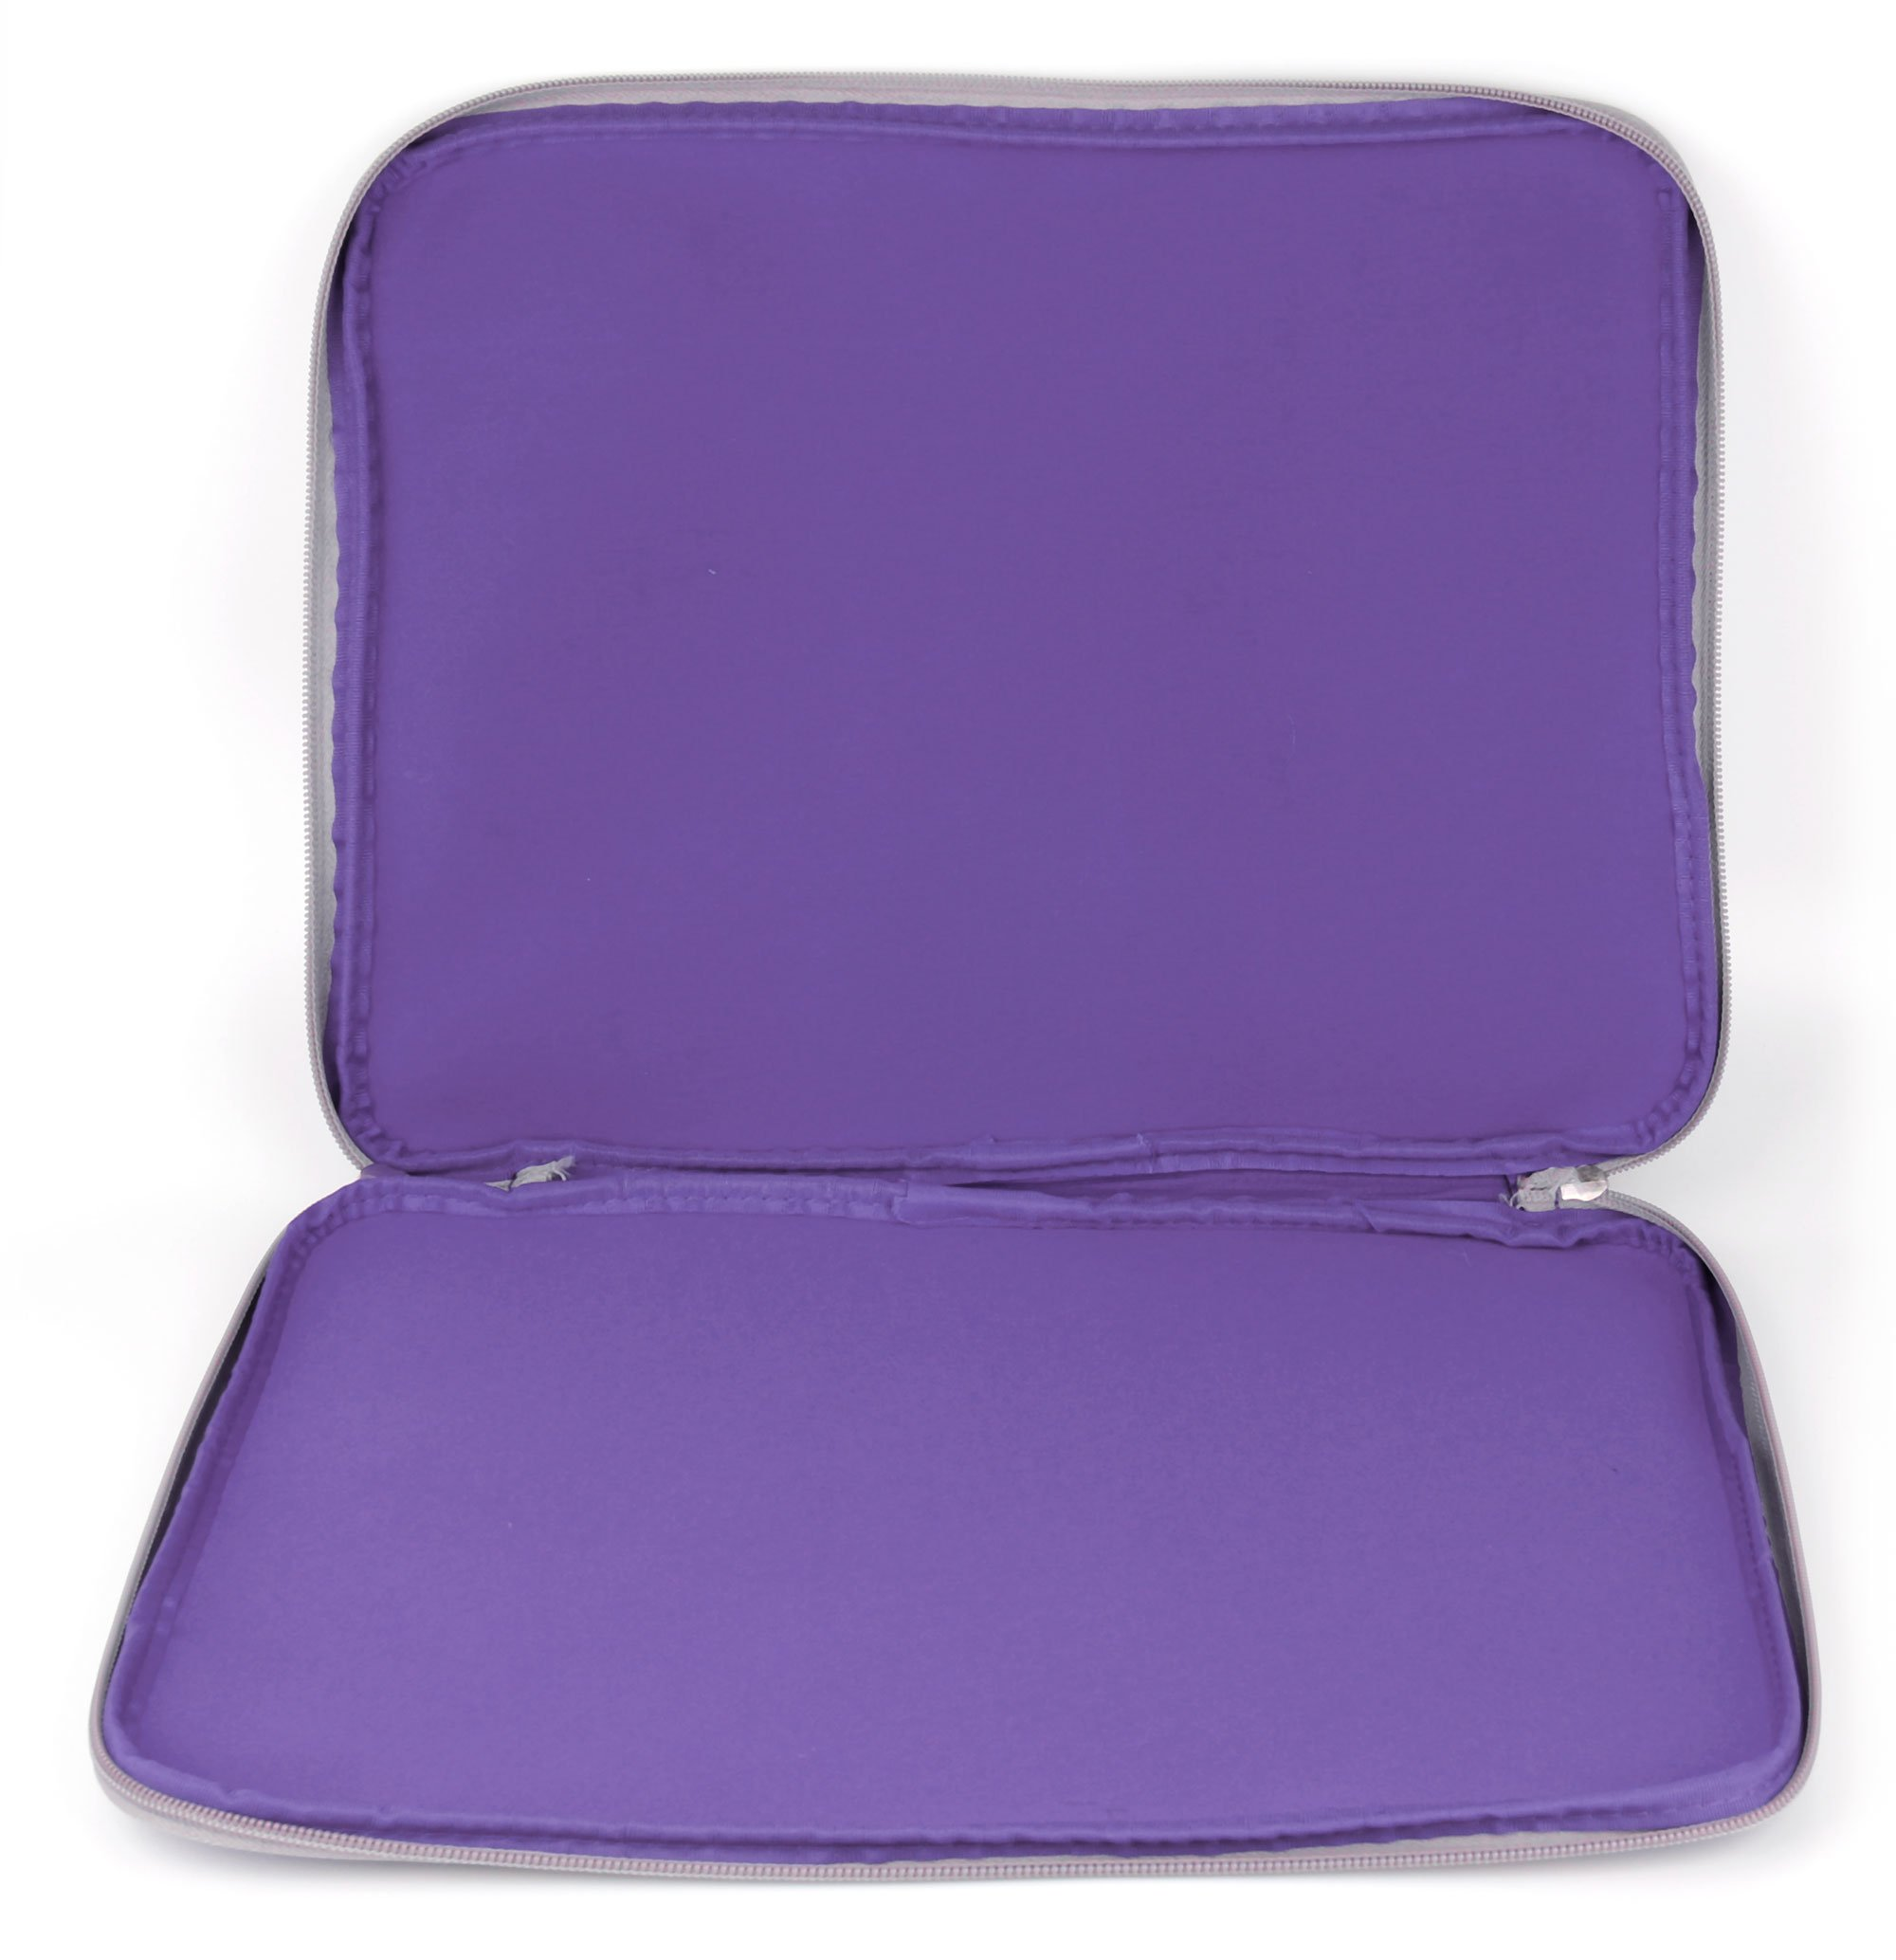 DURAGADGET Purple Travel Water Resistant & Shock Absorbent Neoprene Laptop Sleeve with Dual Zips Compatible with The Lenovo Ideapad 110 15'' | Ideapad 305 15.6'' Laptop by DURAGADGET (Image #3)